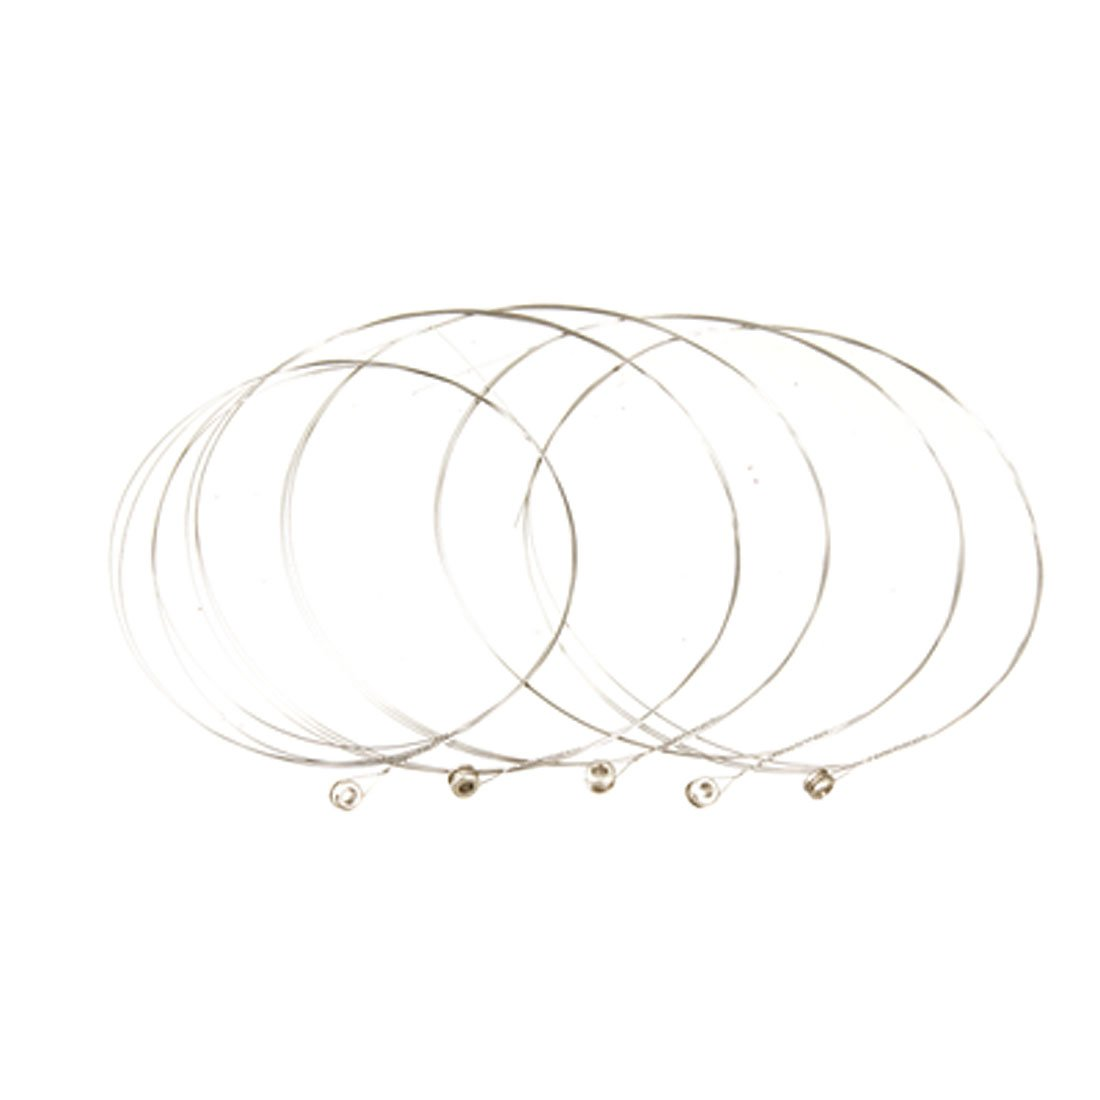 Good deal 5 Pcs Silver Tone Steel Strings E-1 for Acoustic Guitar<br><br>Aliexpress